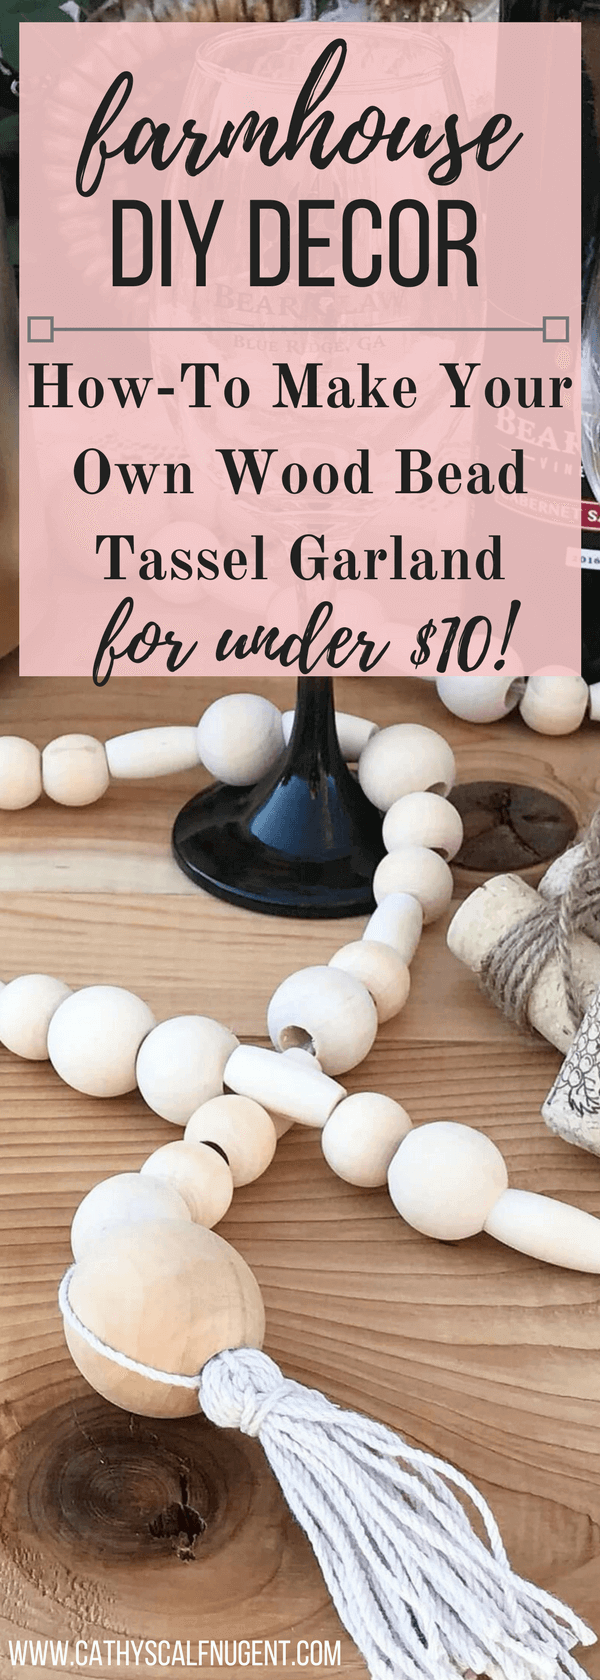 DIY Farmhouse Decor: How-To Make Your Own Wood Bead Garland